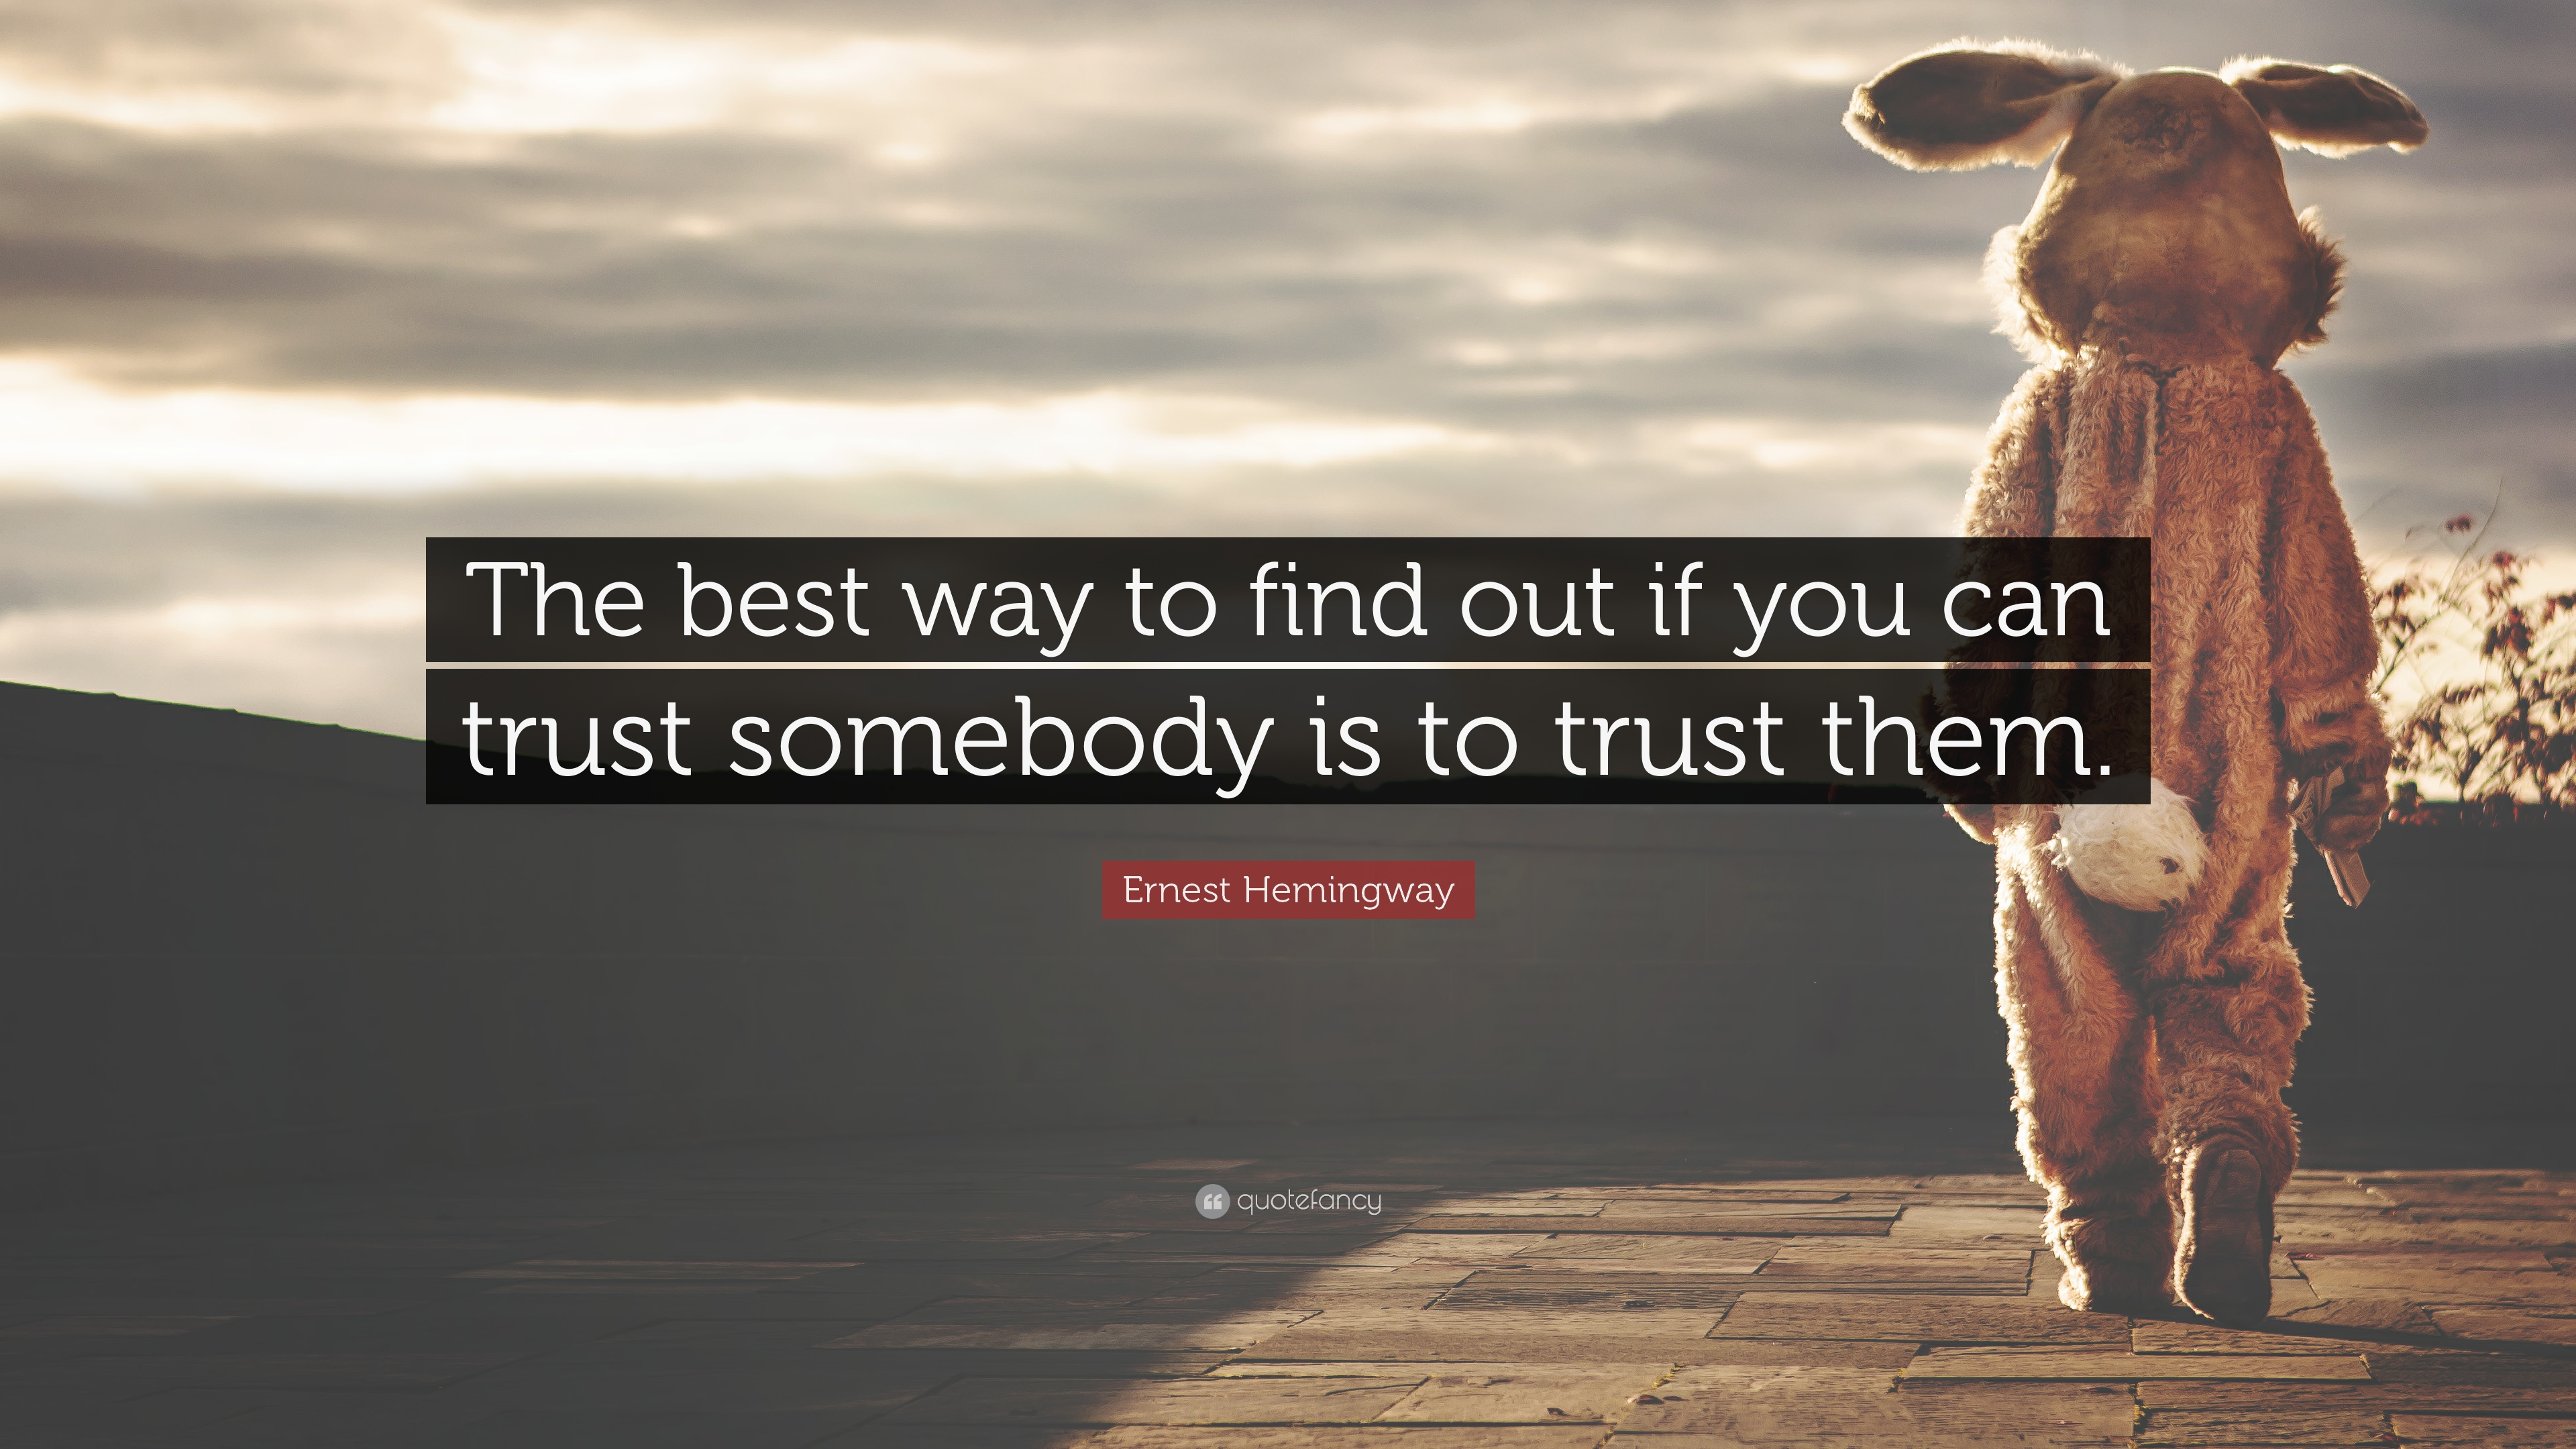 Ernest Hemingway Quote The best way to find out if you can trust somebody is to trust them